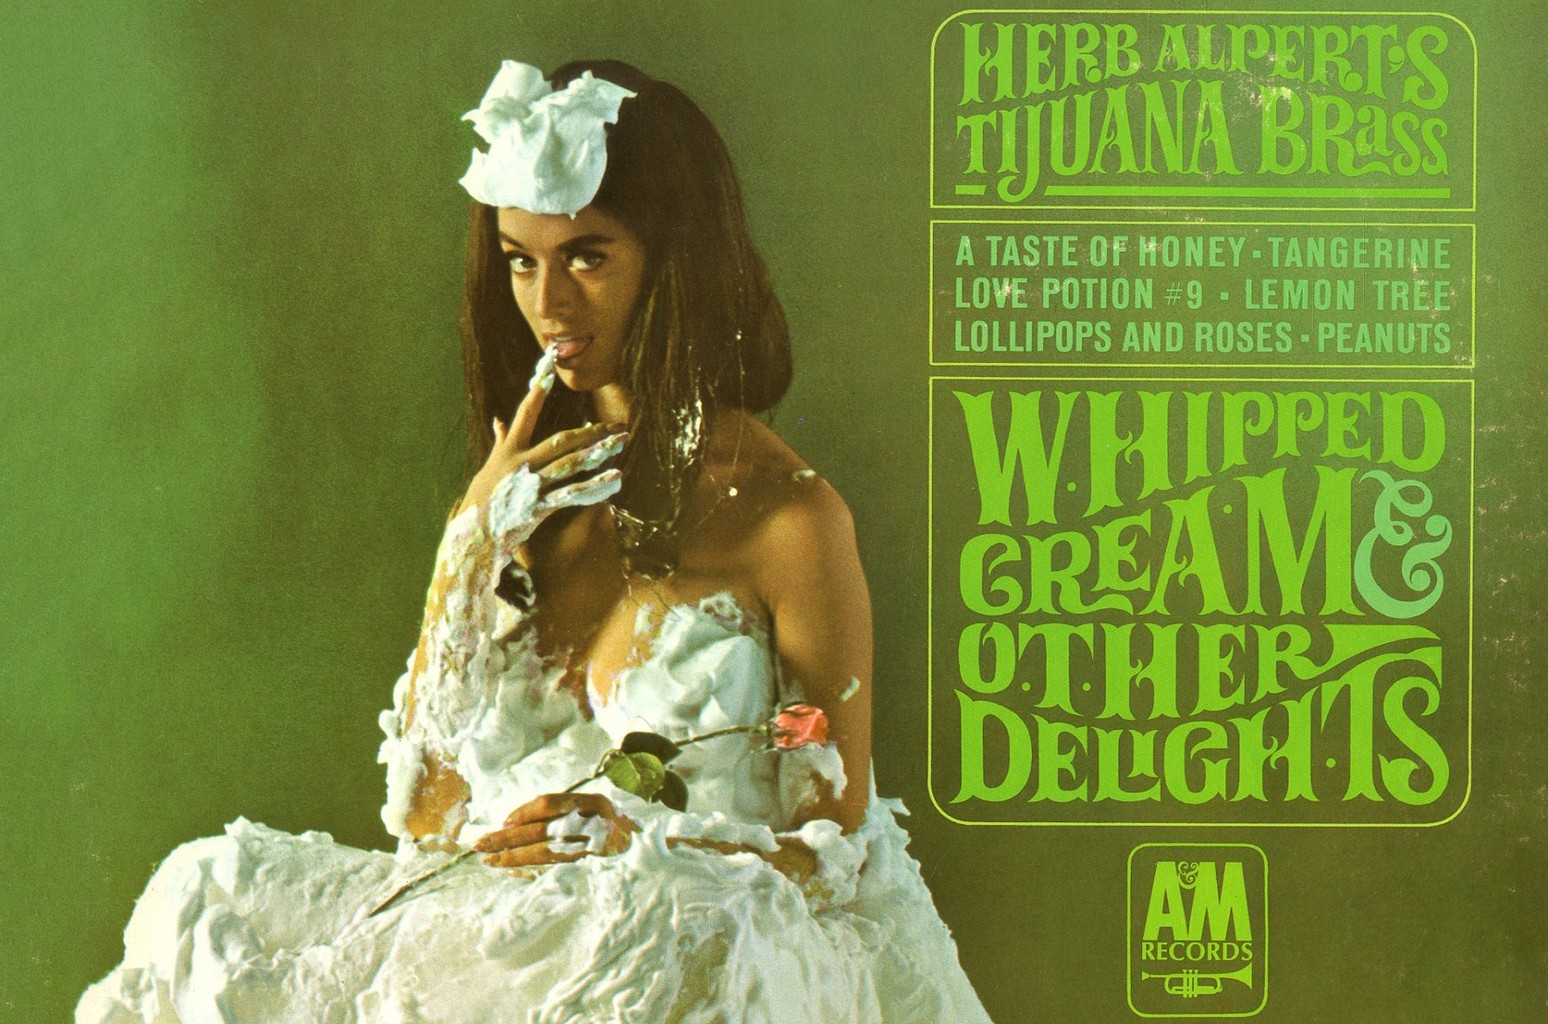 The Real Story Behind Herb Alpert's Iconic 'Whipped Cream & Other Delights' Album Cover, 50 Years Later